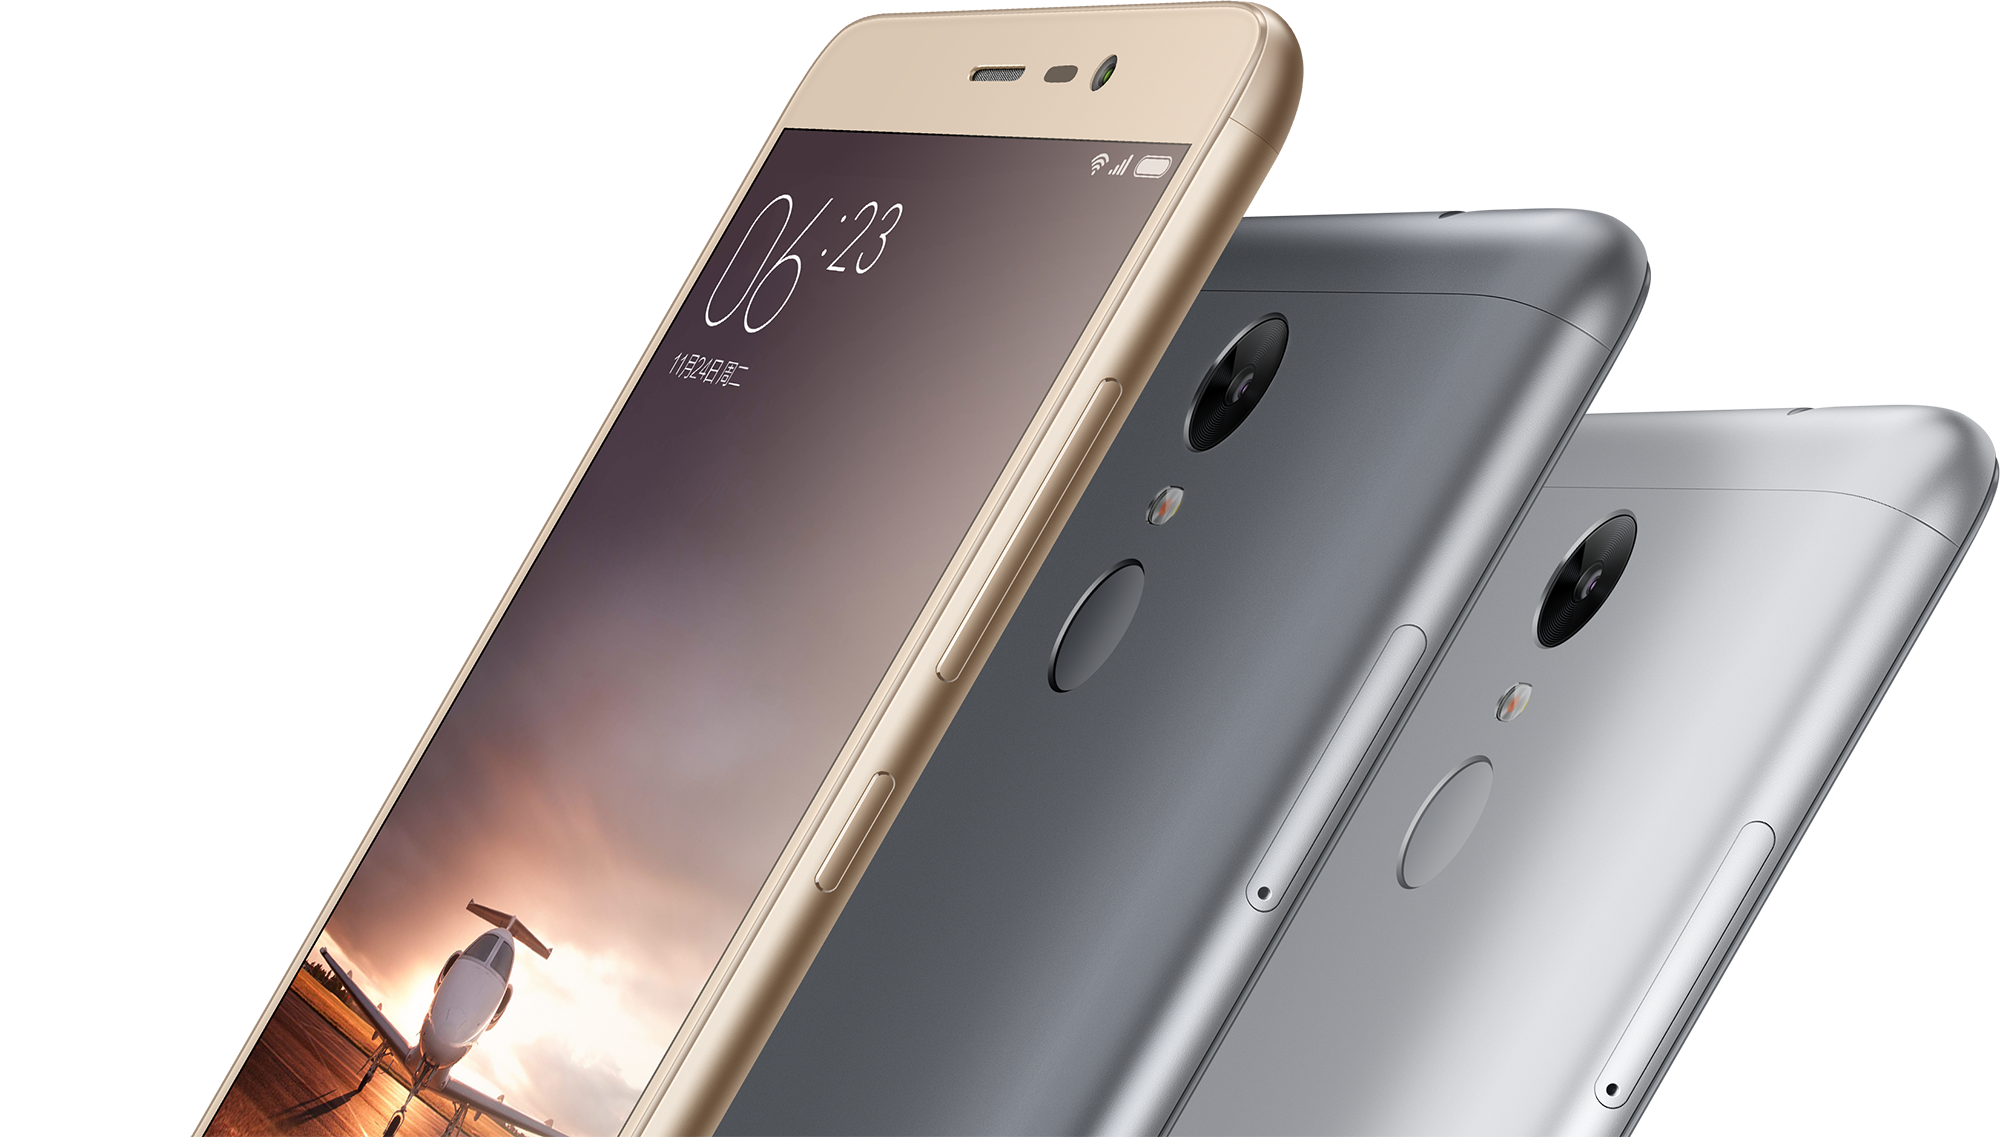 Xiaomi Redmi Note 3 Pro Specification And Reviews